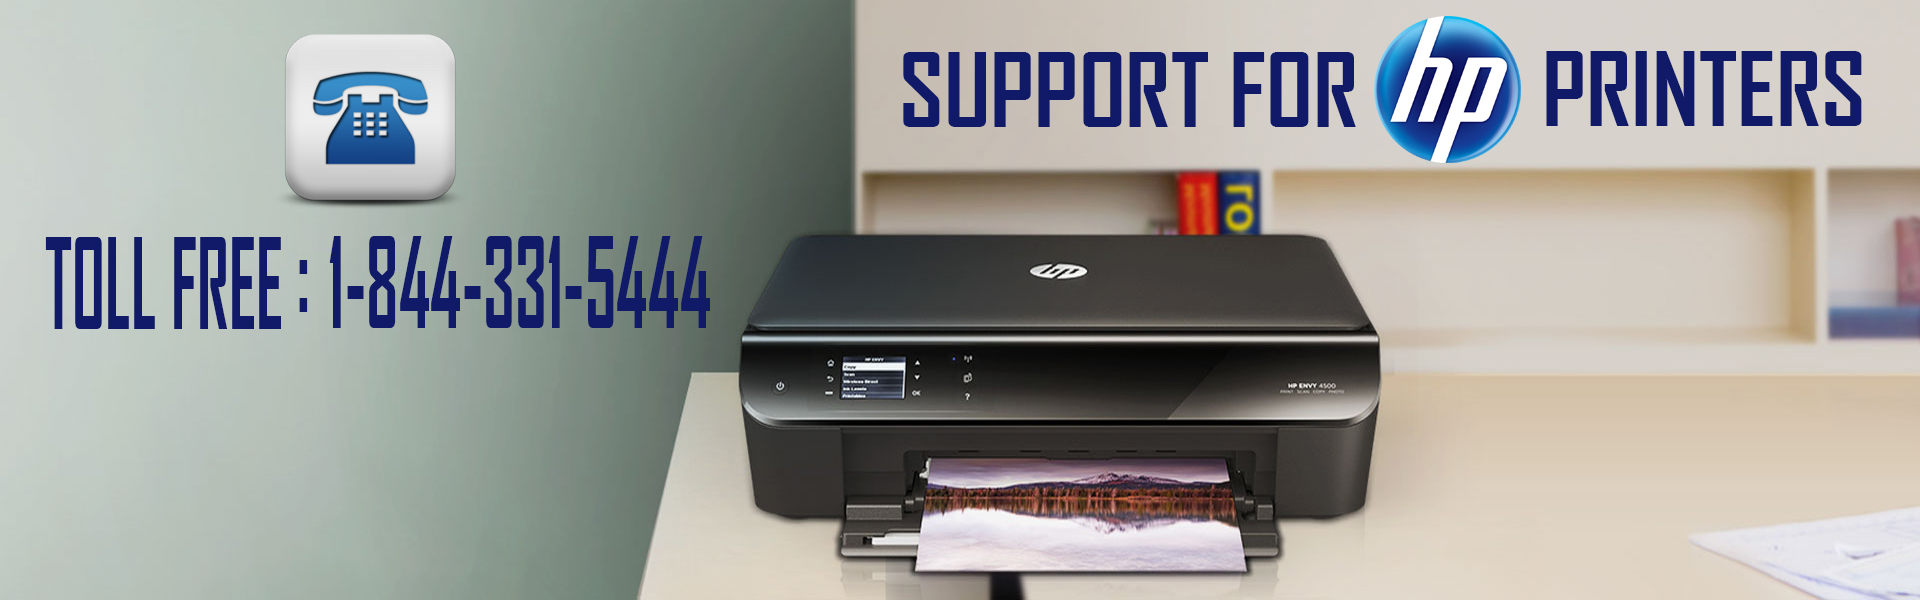 HP Printer Customer Service: How to Fix HP Printer Error